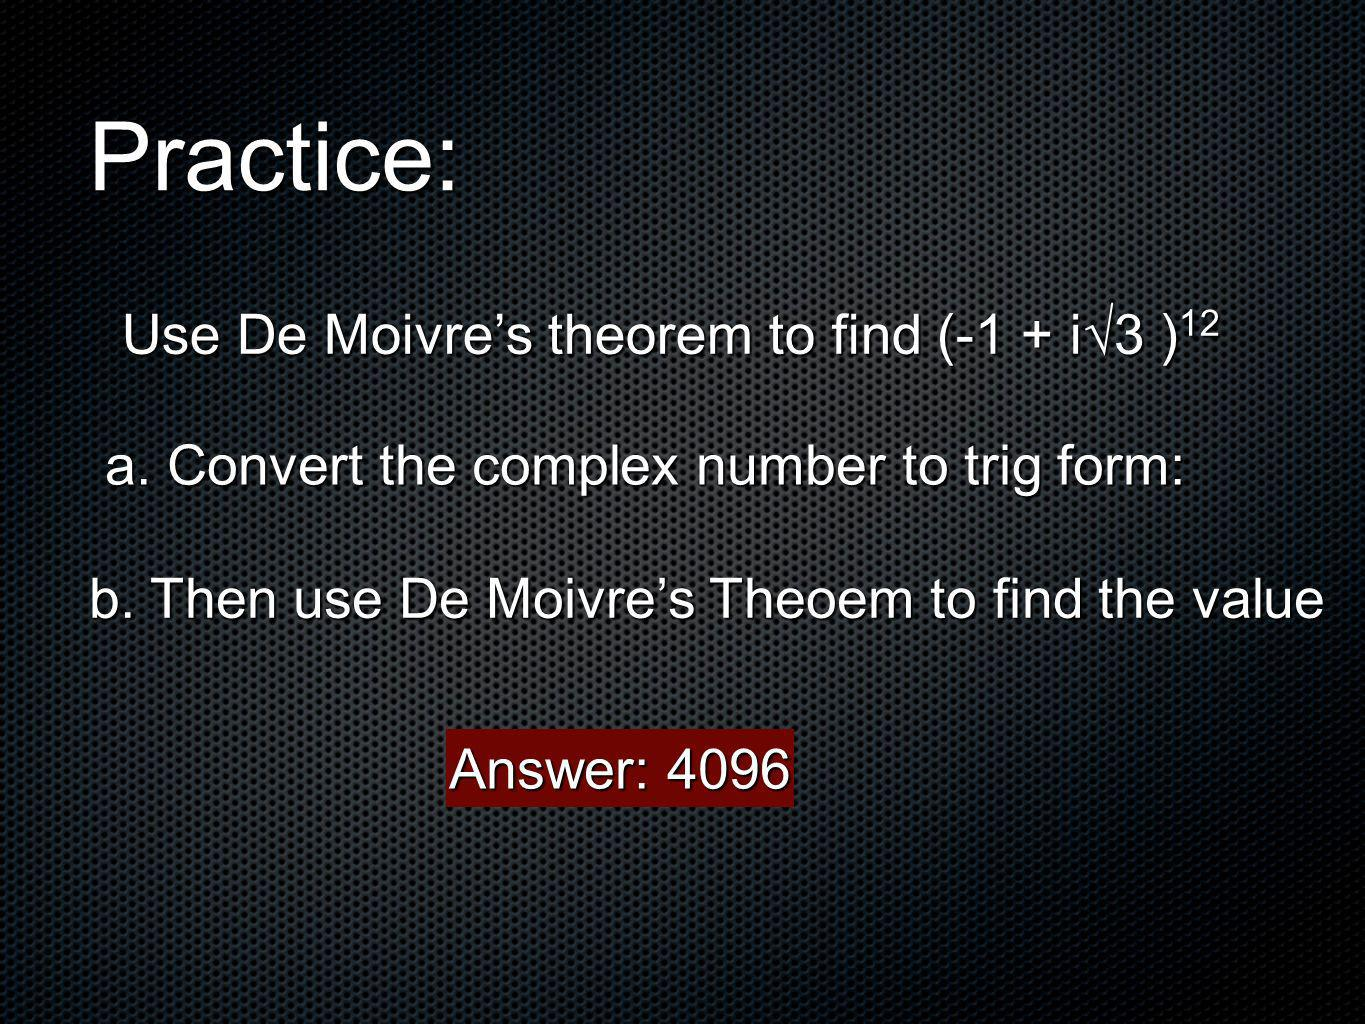 Practice: Use De Moivre's theorem to find (-1 + i√3 )12